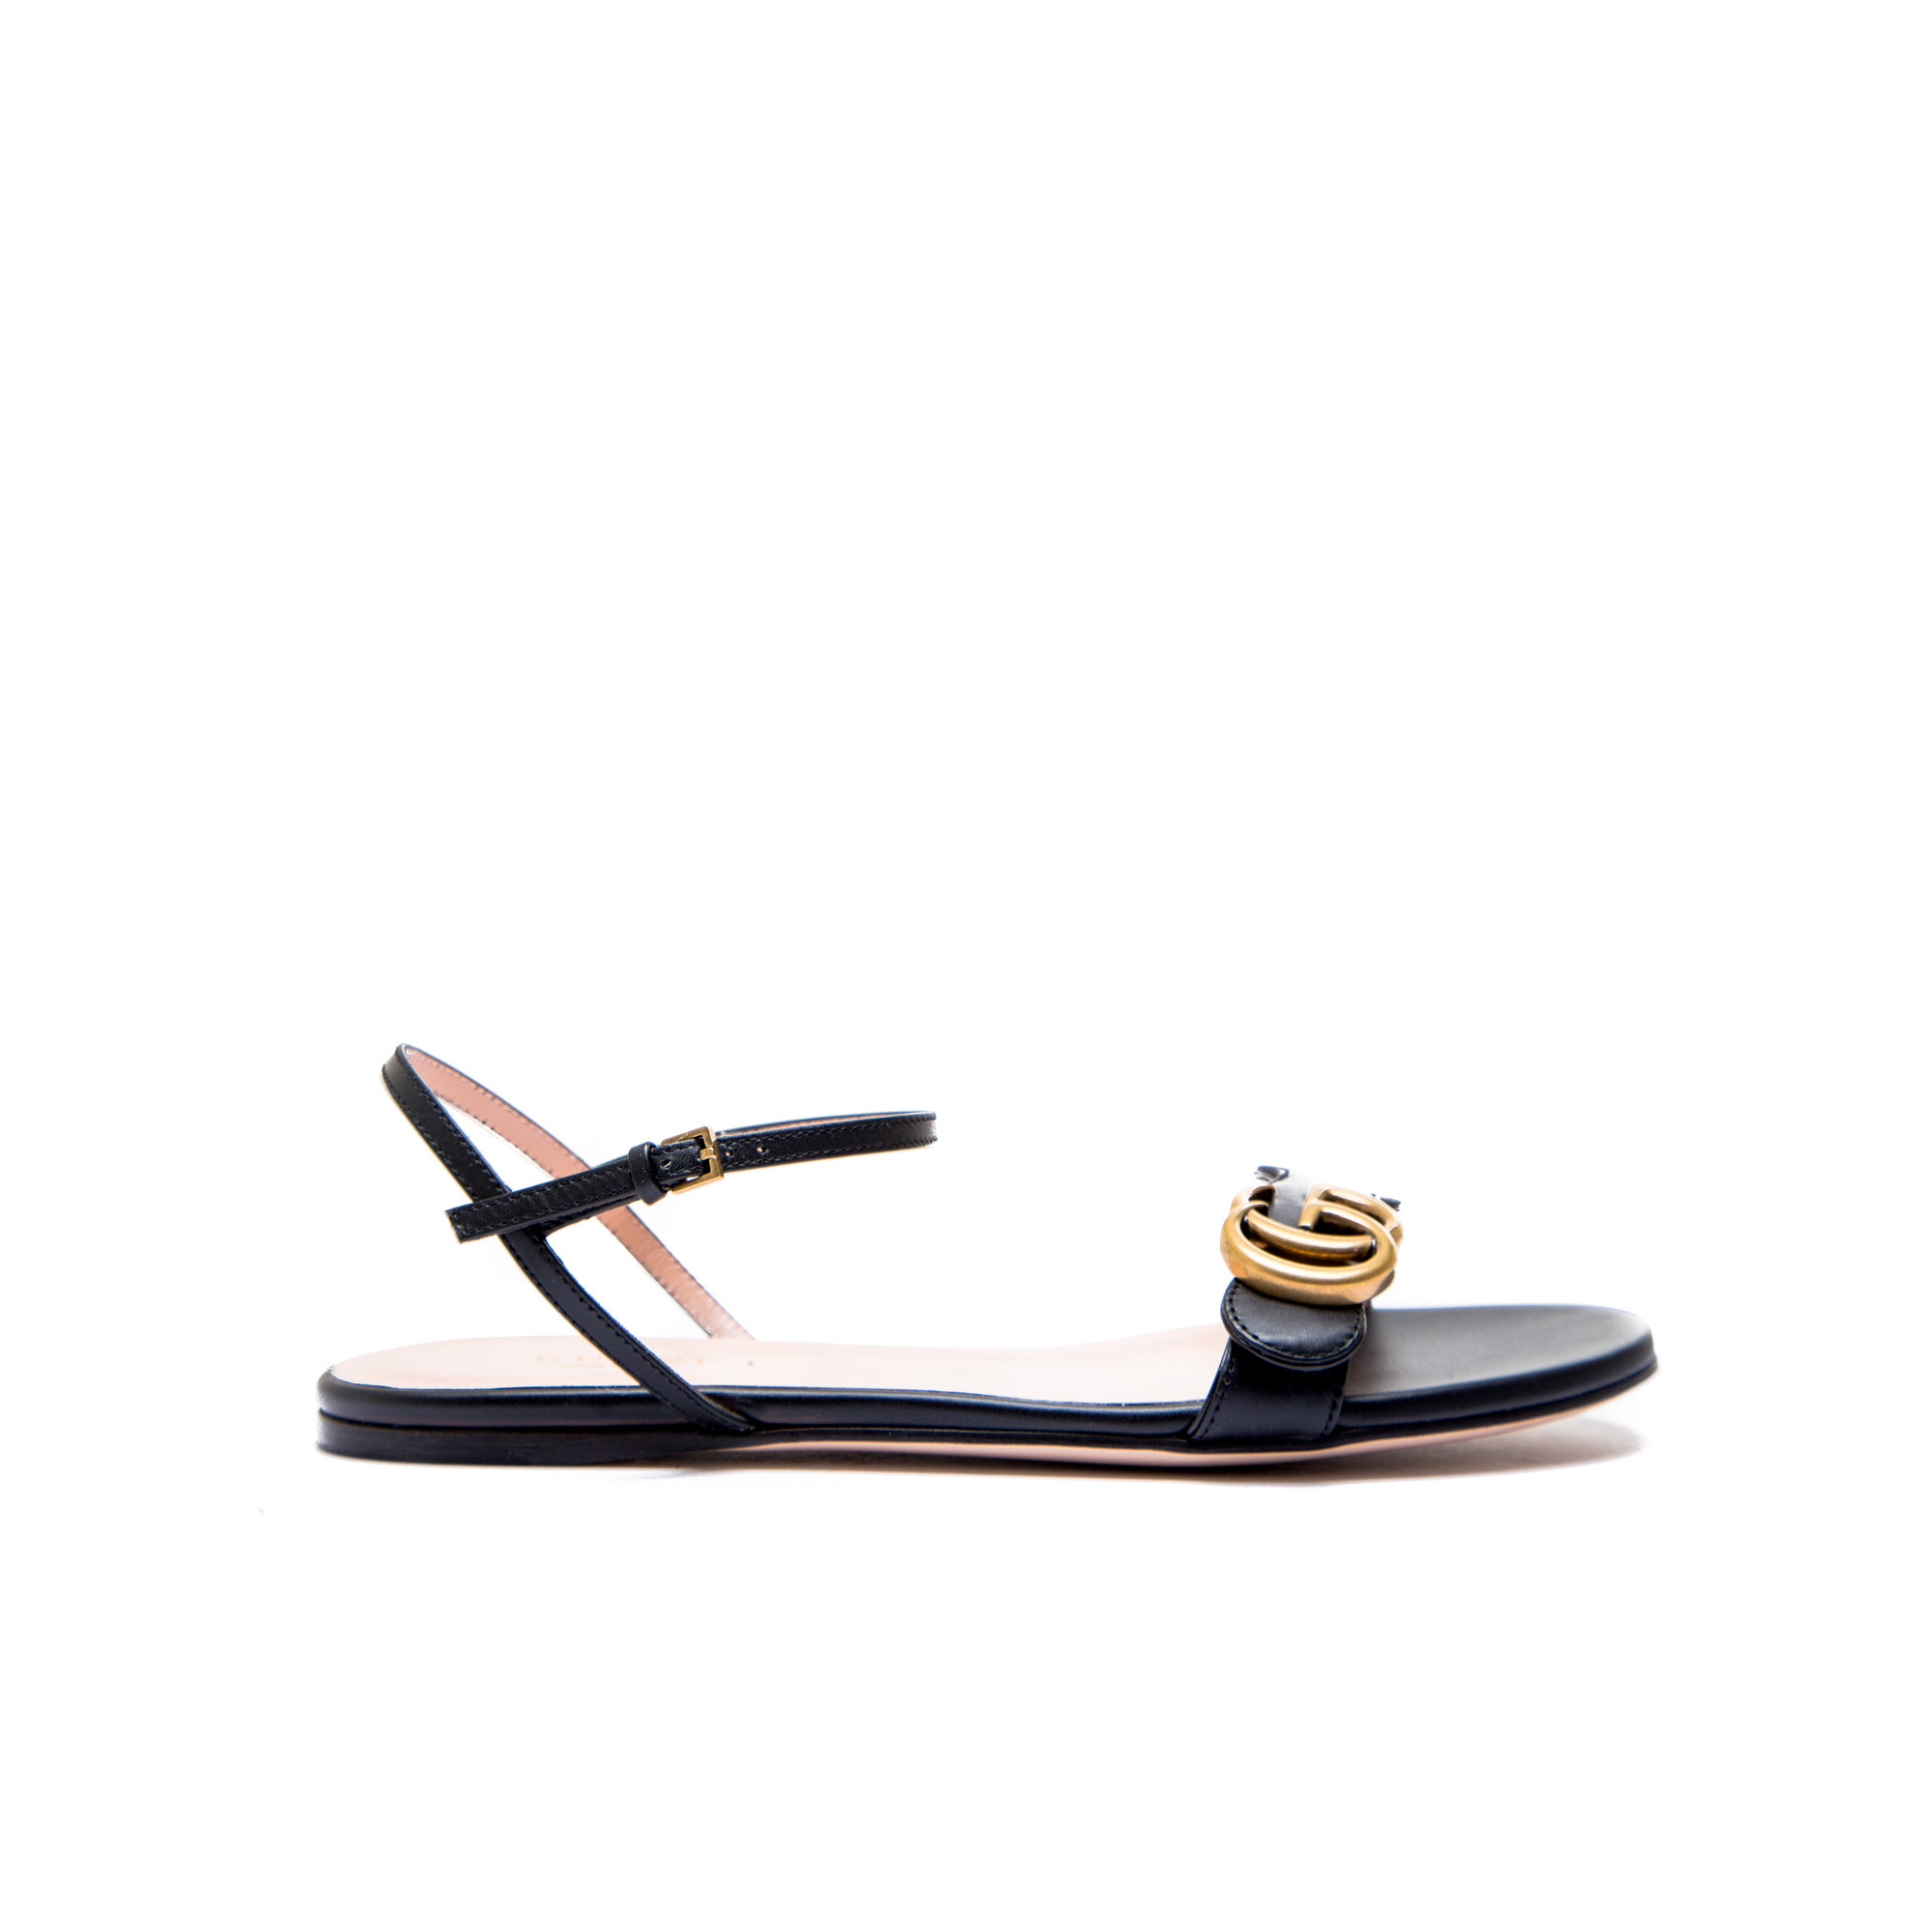 dca6e563bc08c Gucci sandals lifford black524631   a3n00   1000